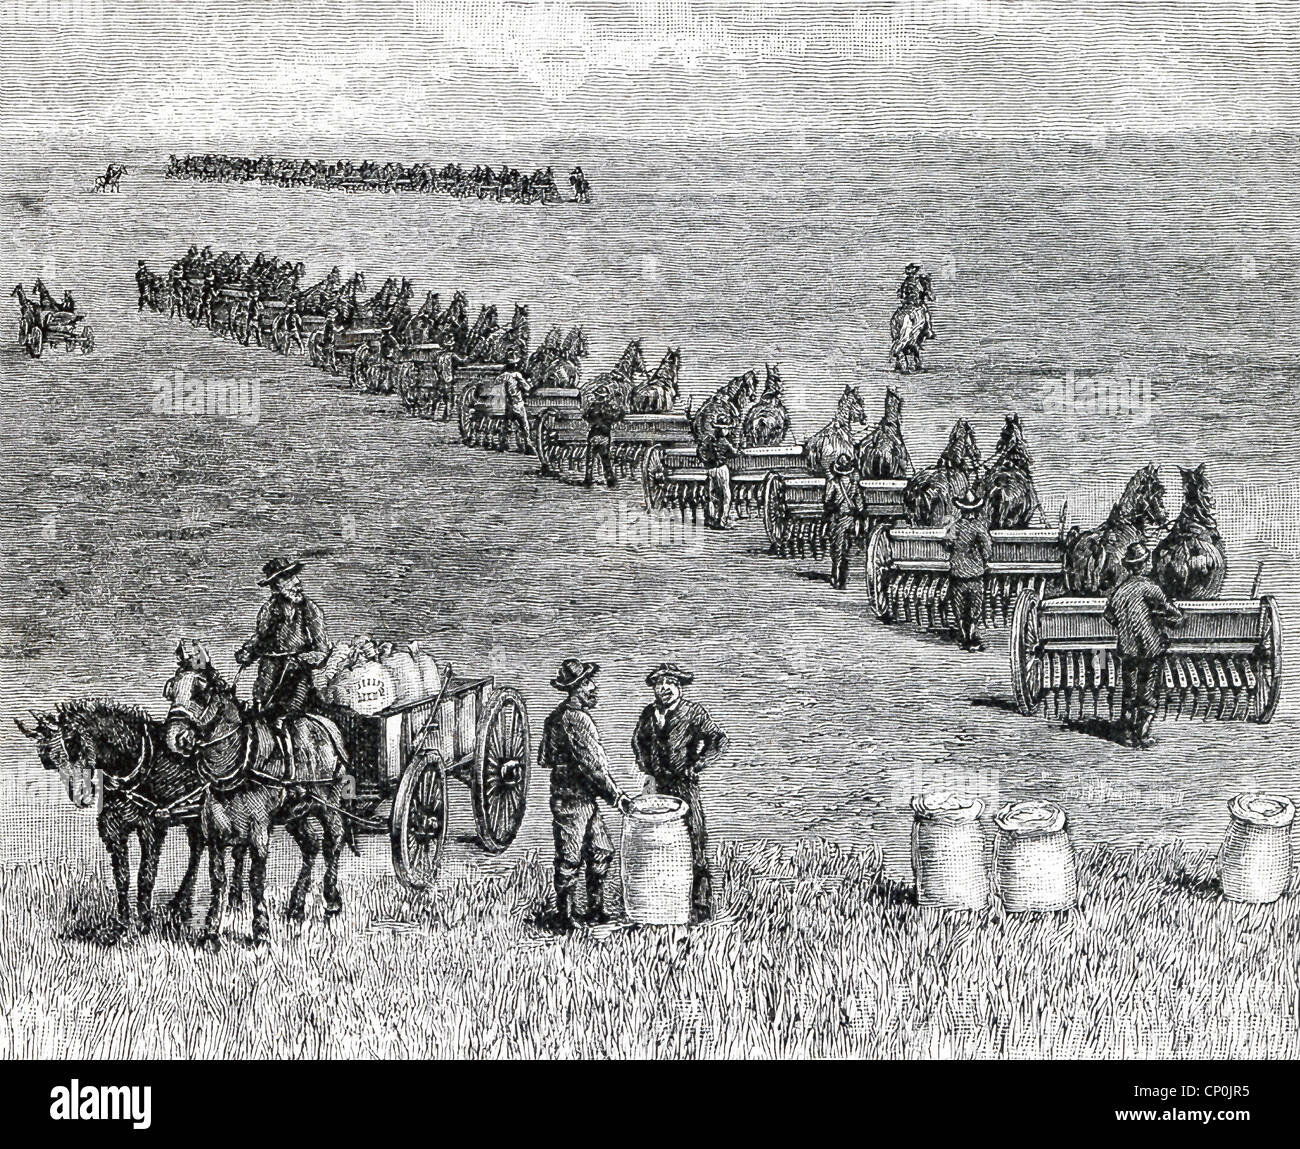 A bonanza farm, a phrase used in US in the 1870s, referred to very large farms harvested mostly wheat, being seeded - Stock Image